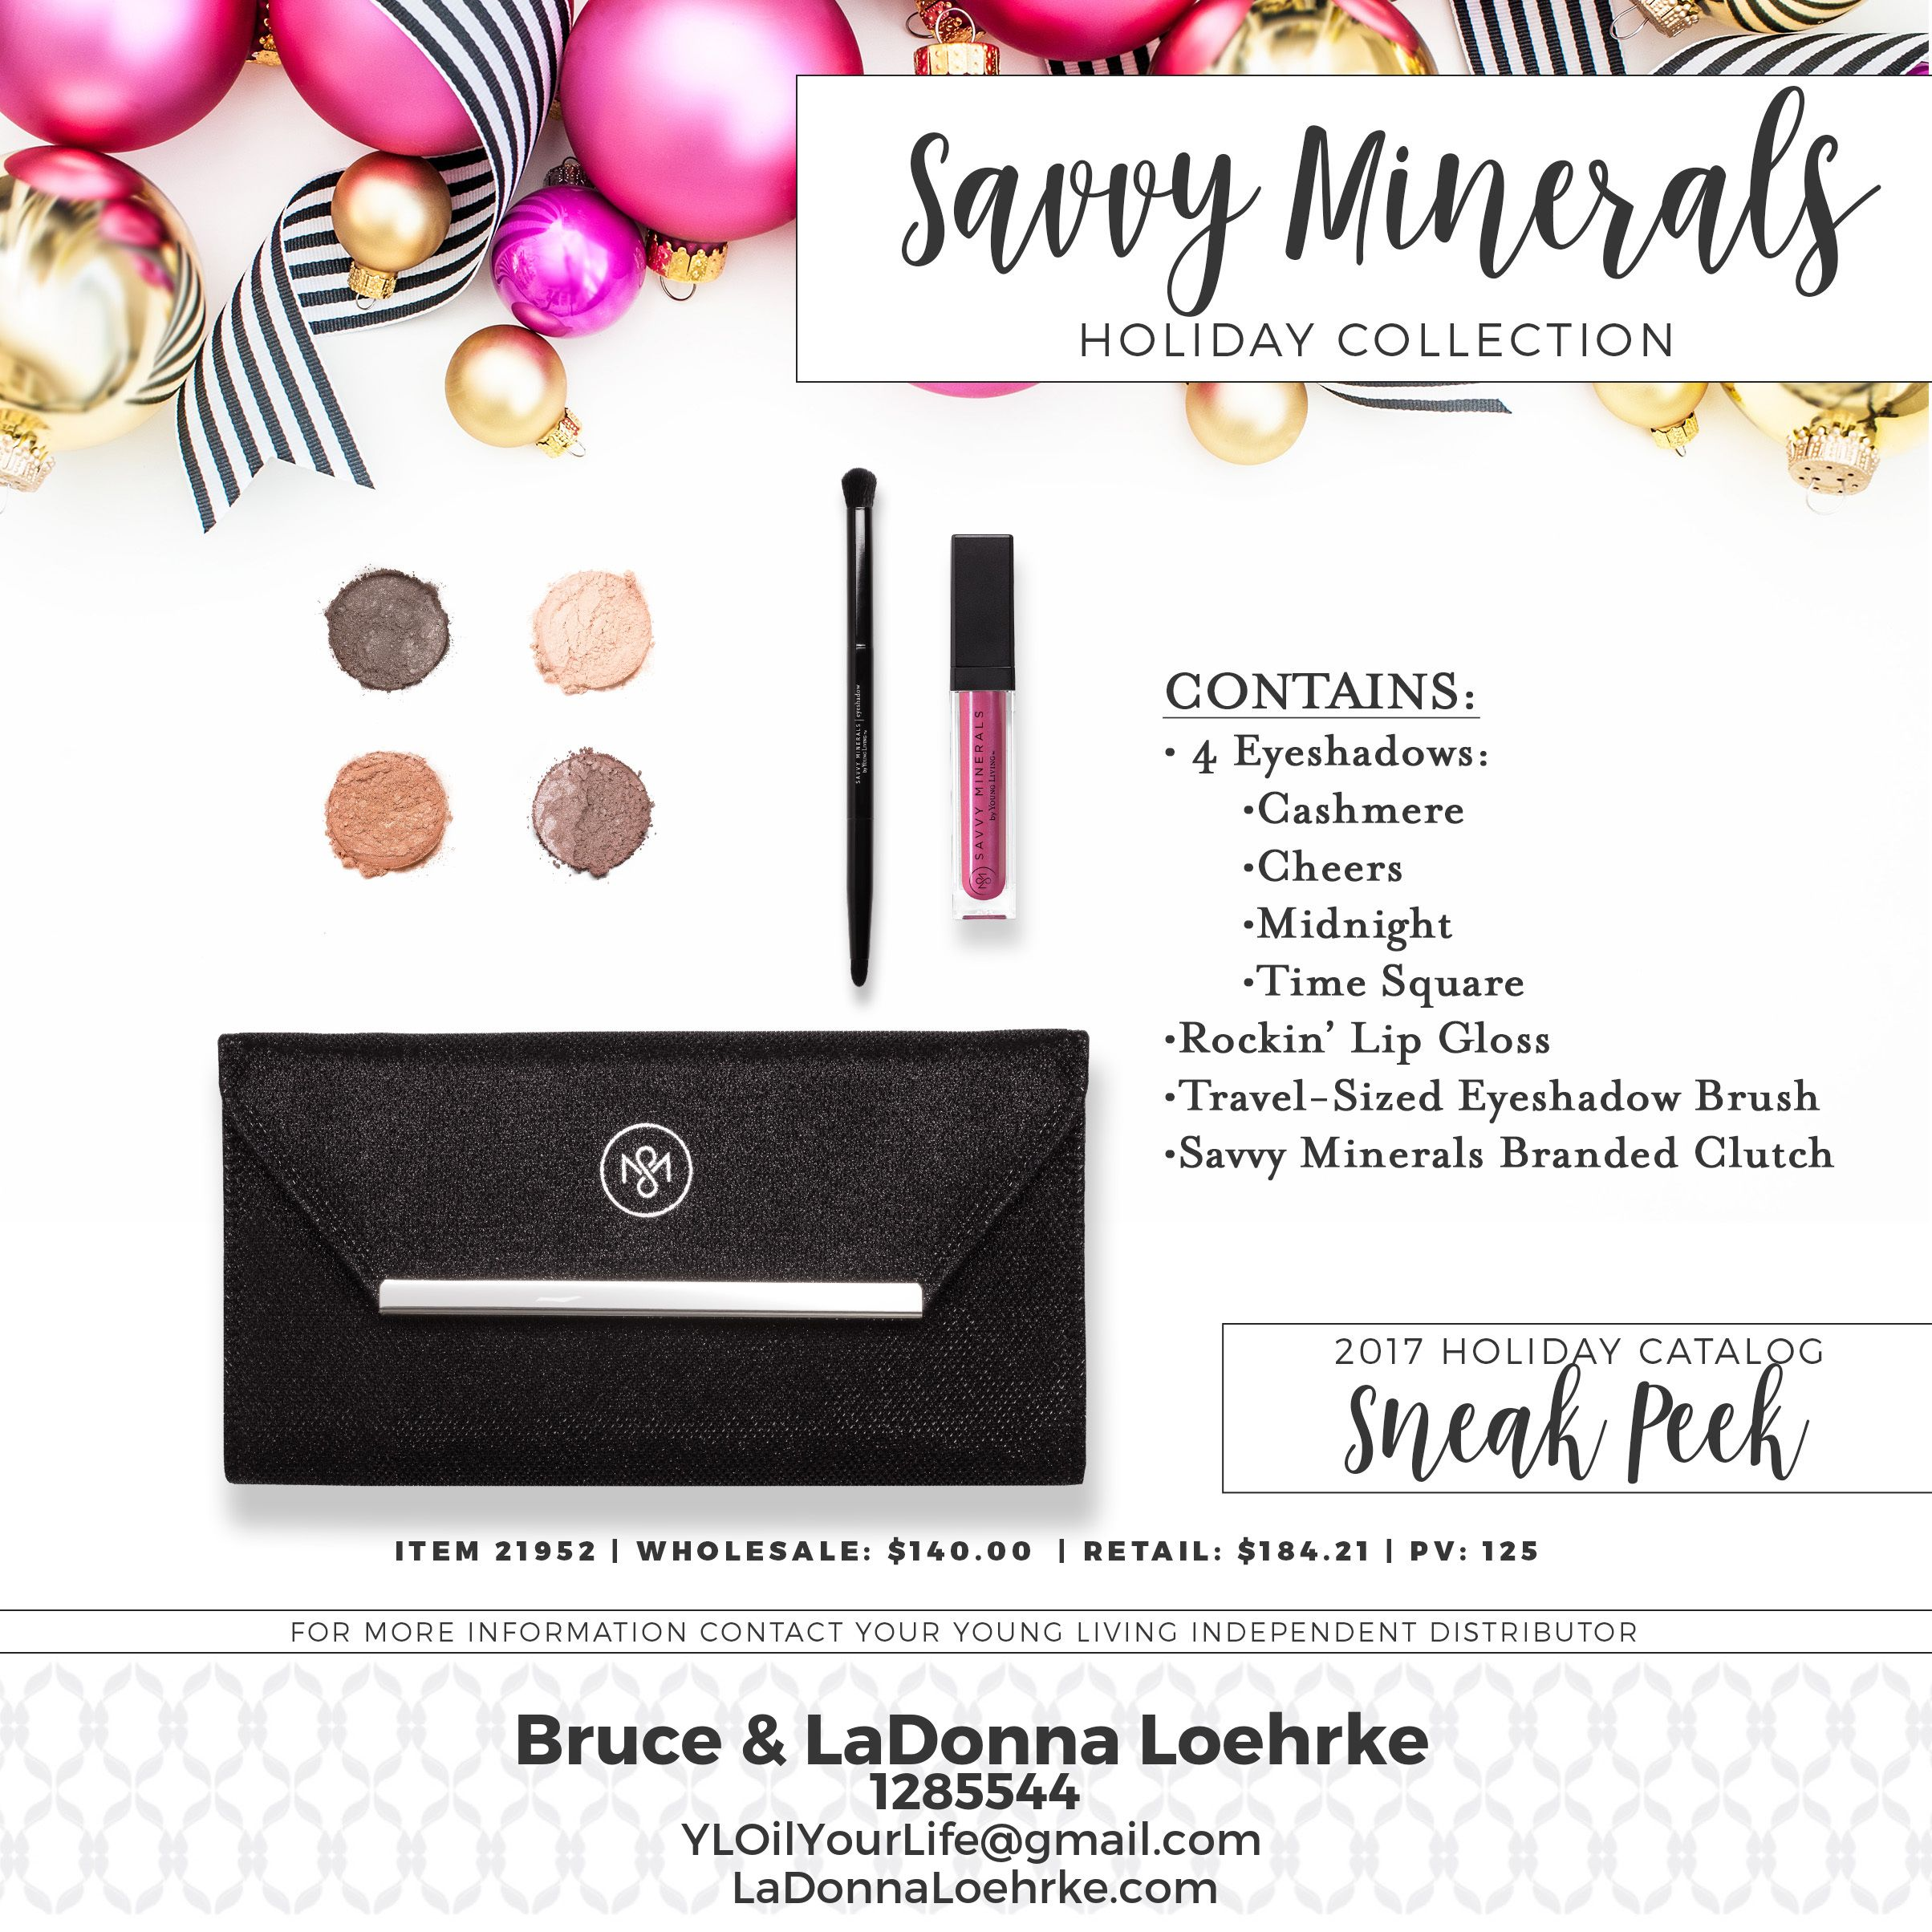 Savvy Minerals Holiday Collection. This is a small peak of